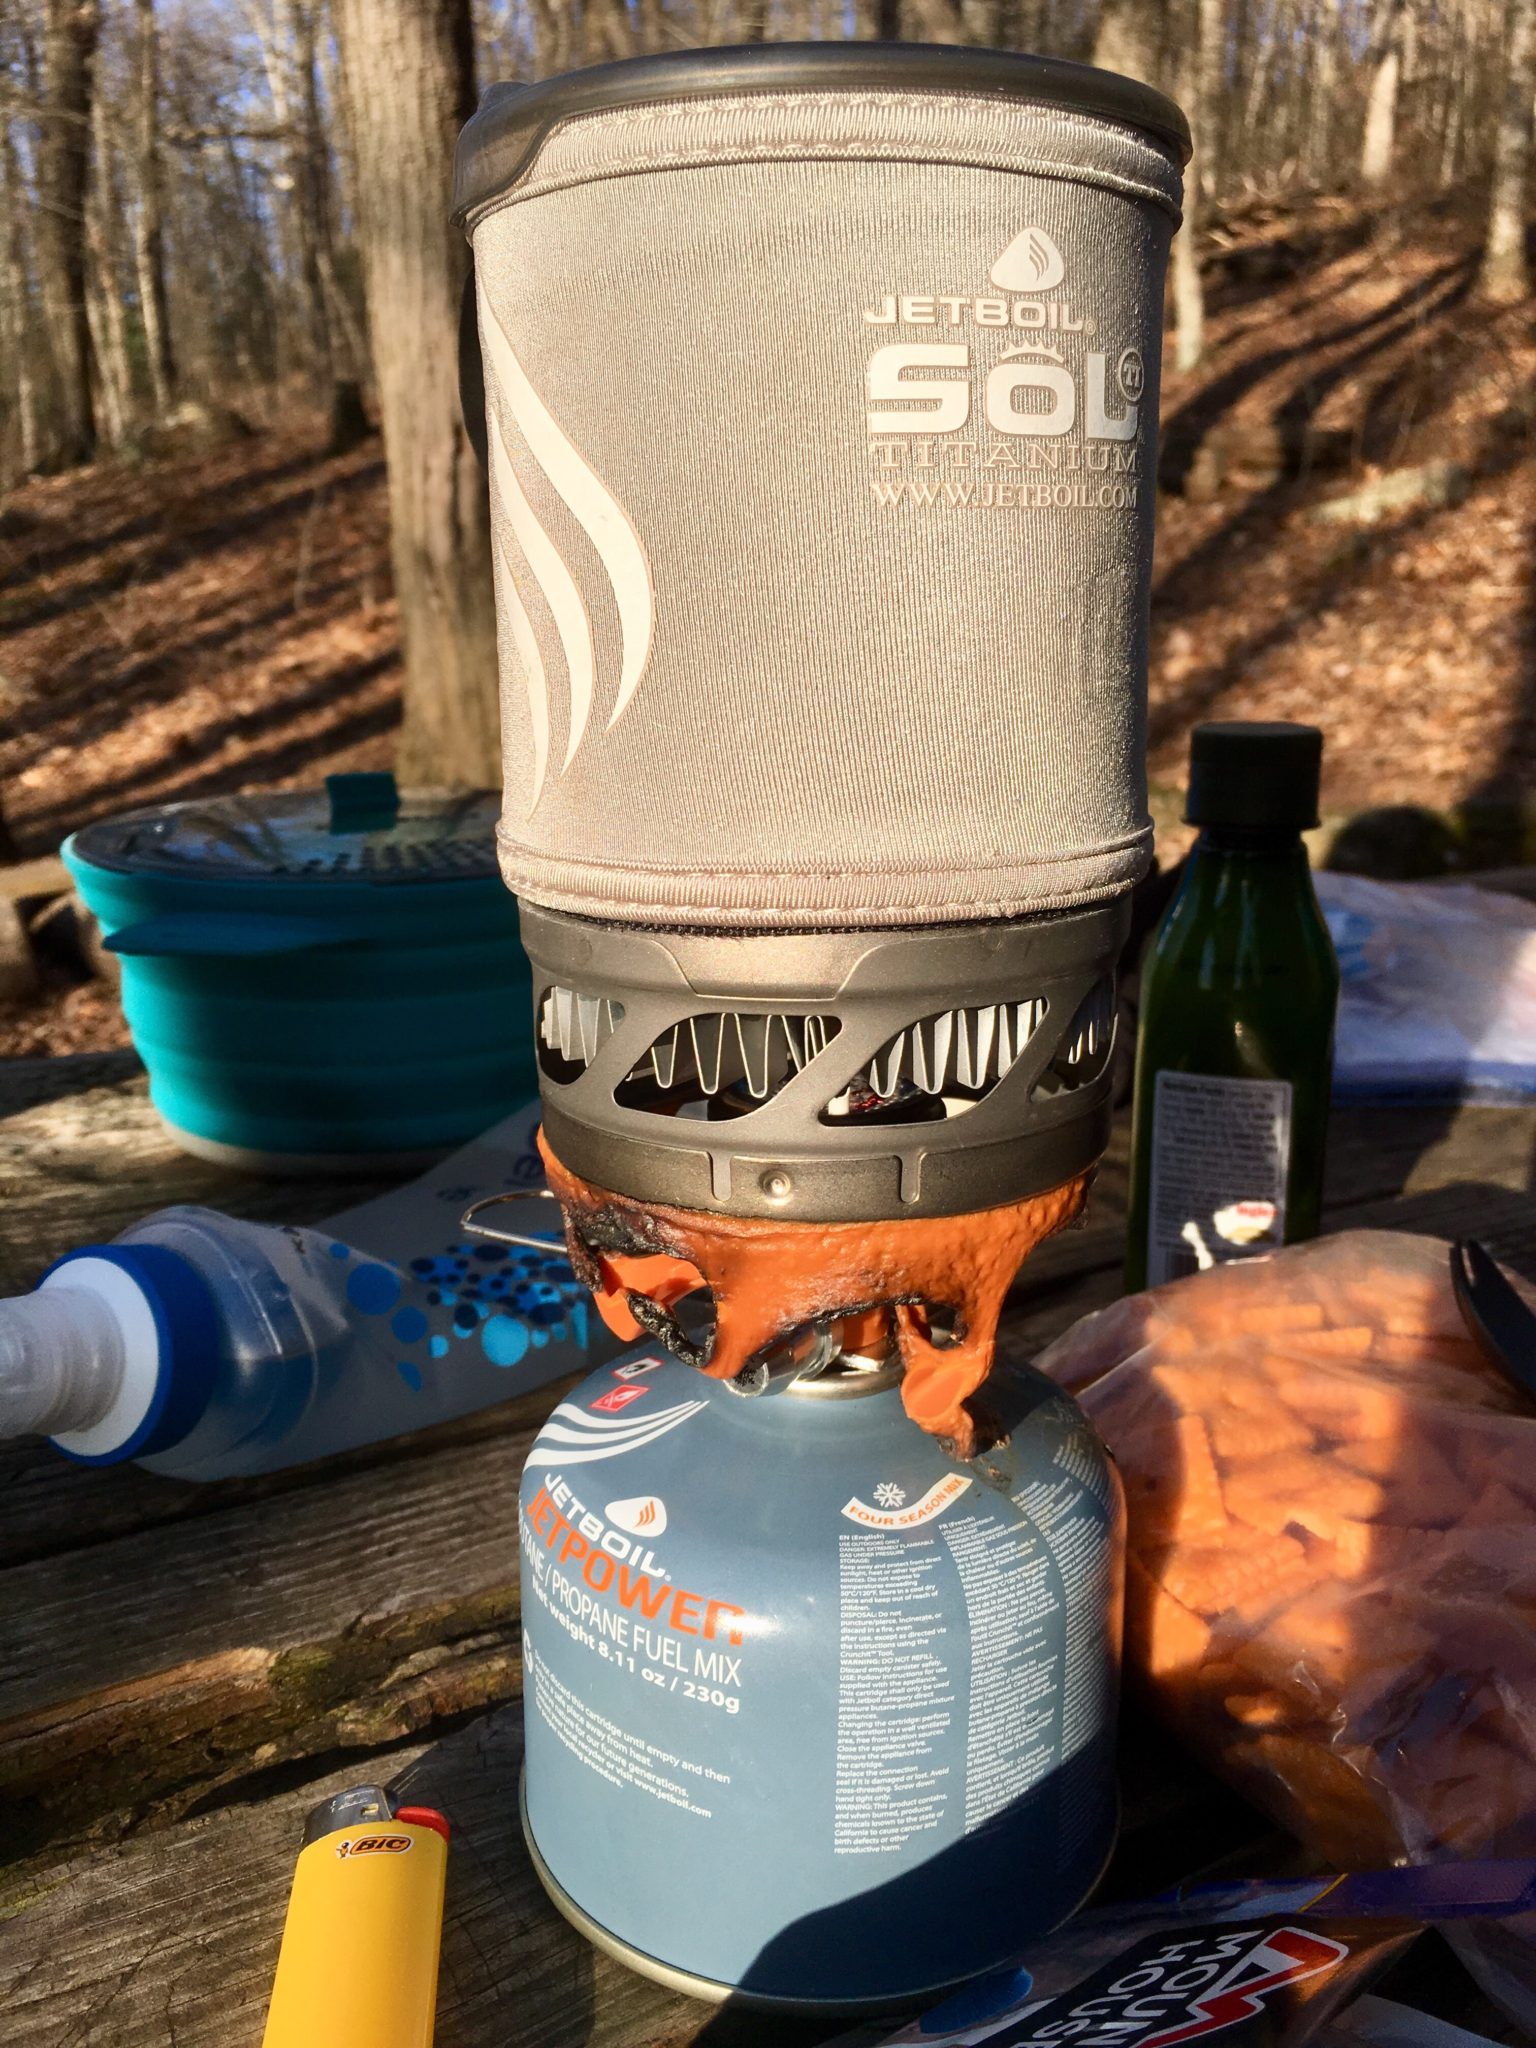 Our Jetboil after the accident.